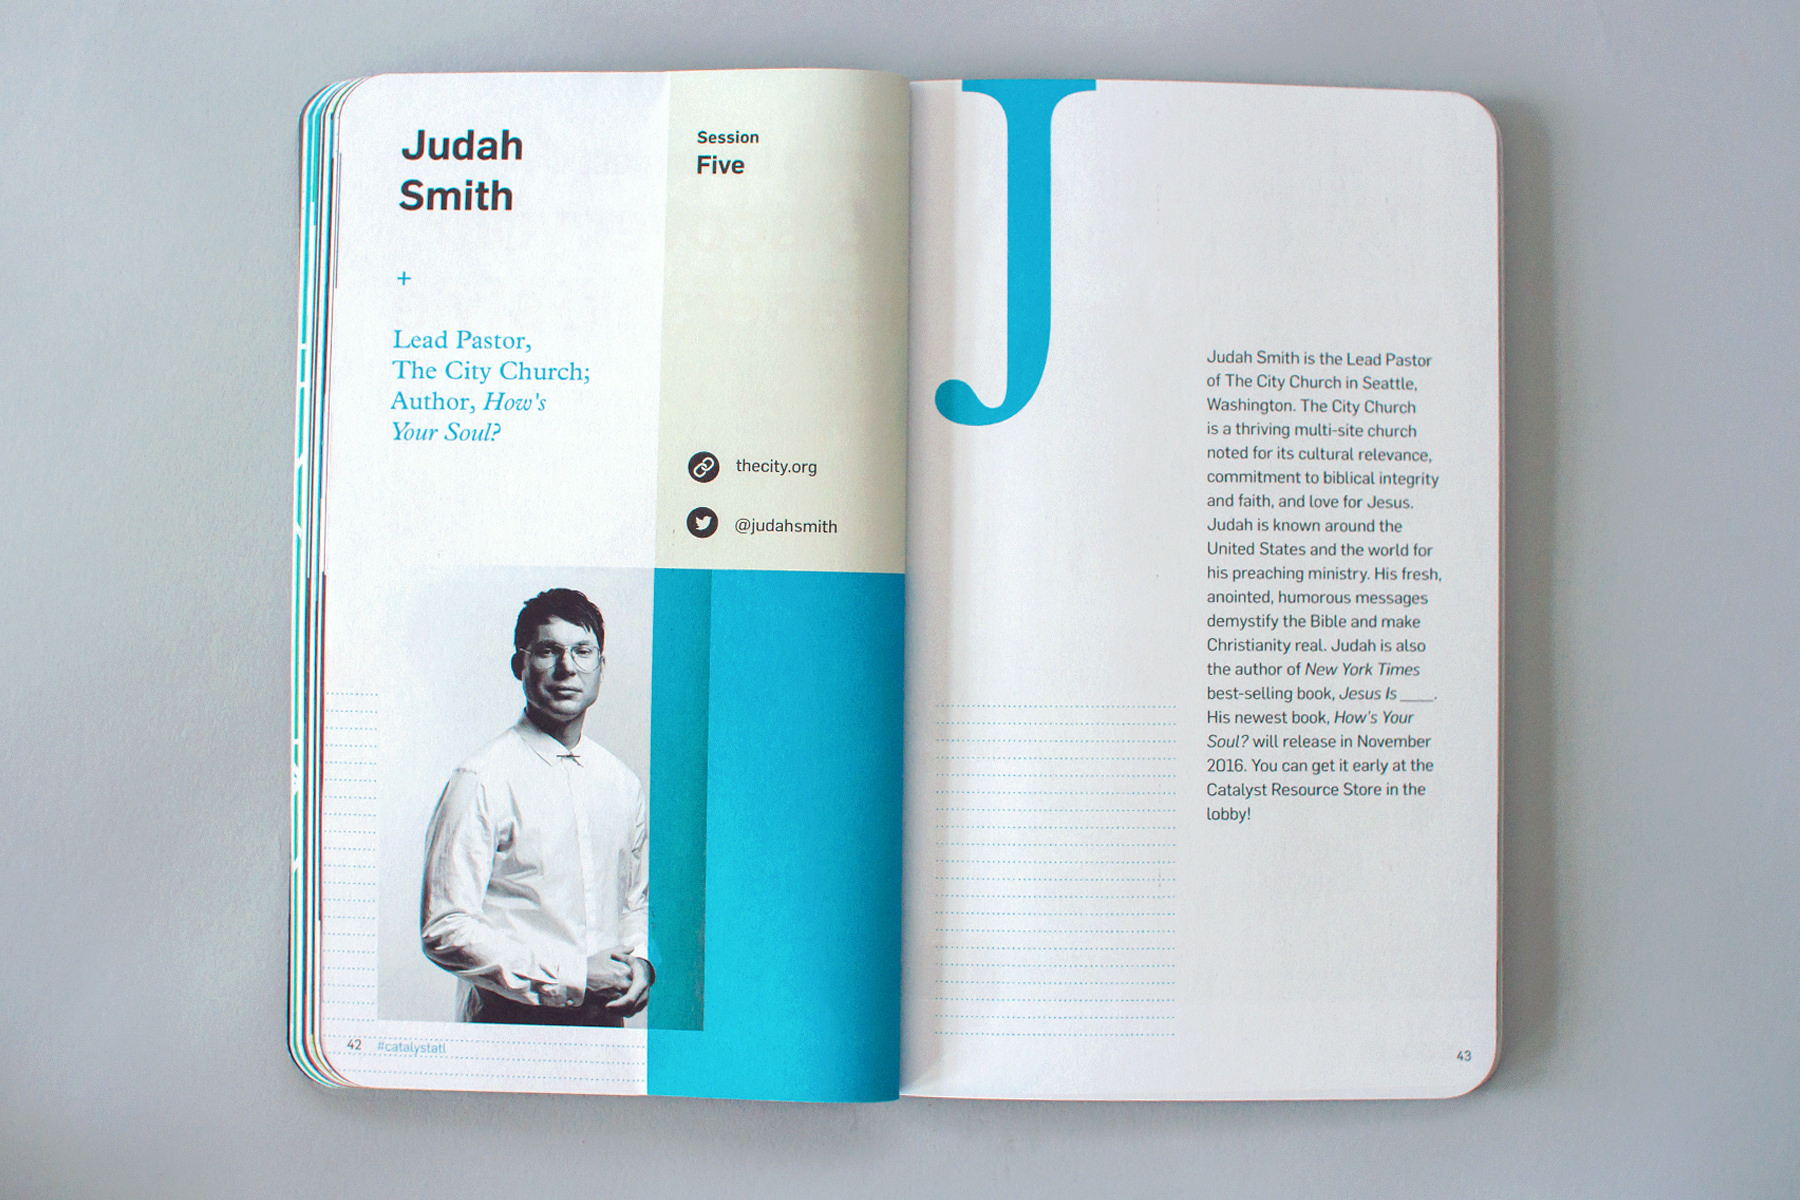 Editorial graphic design of conference notebook features speaker Judah Smith at Catalyst Conference 2016.